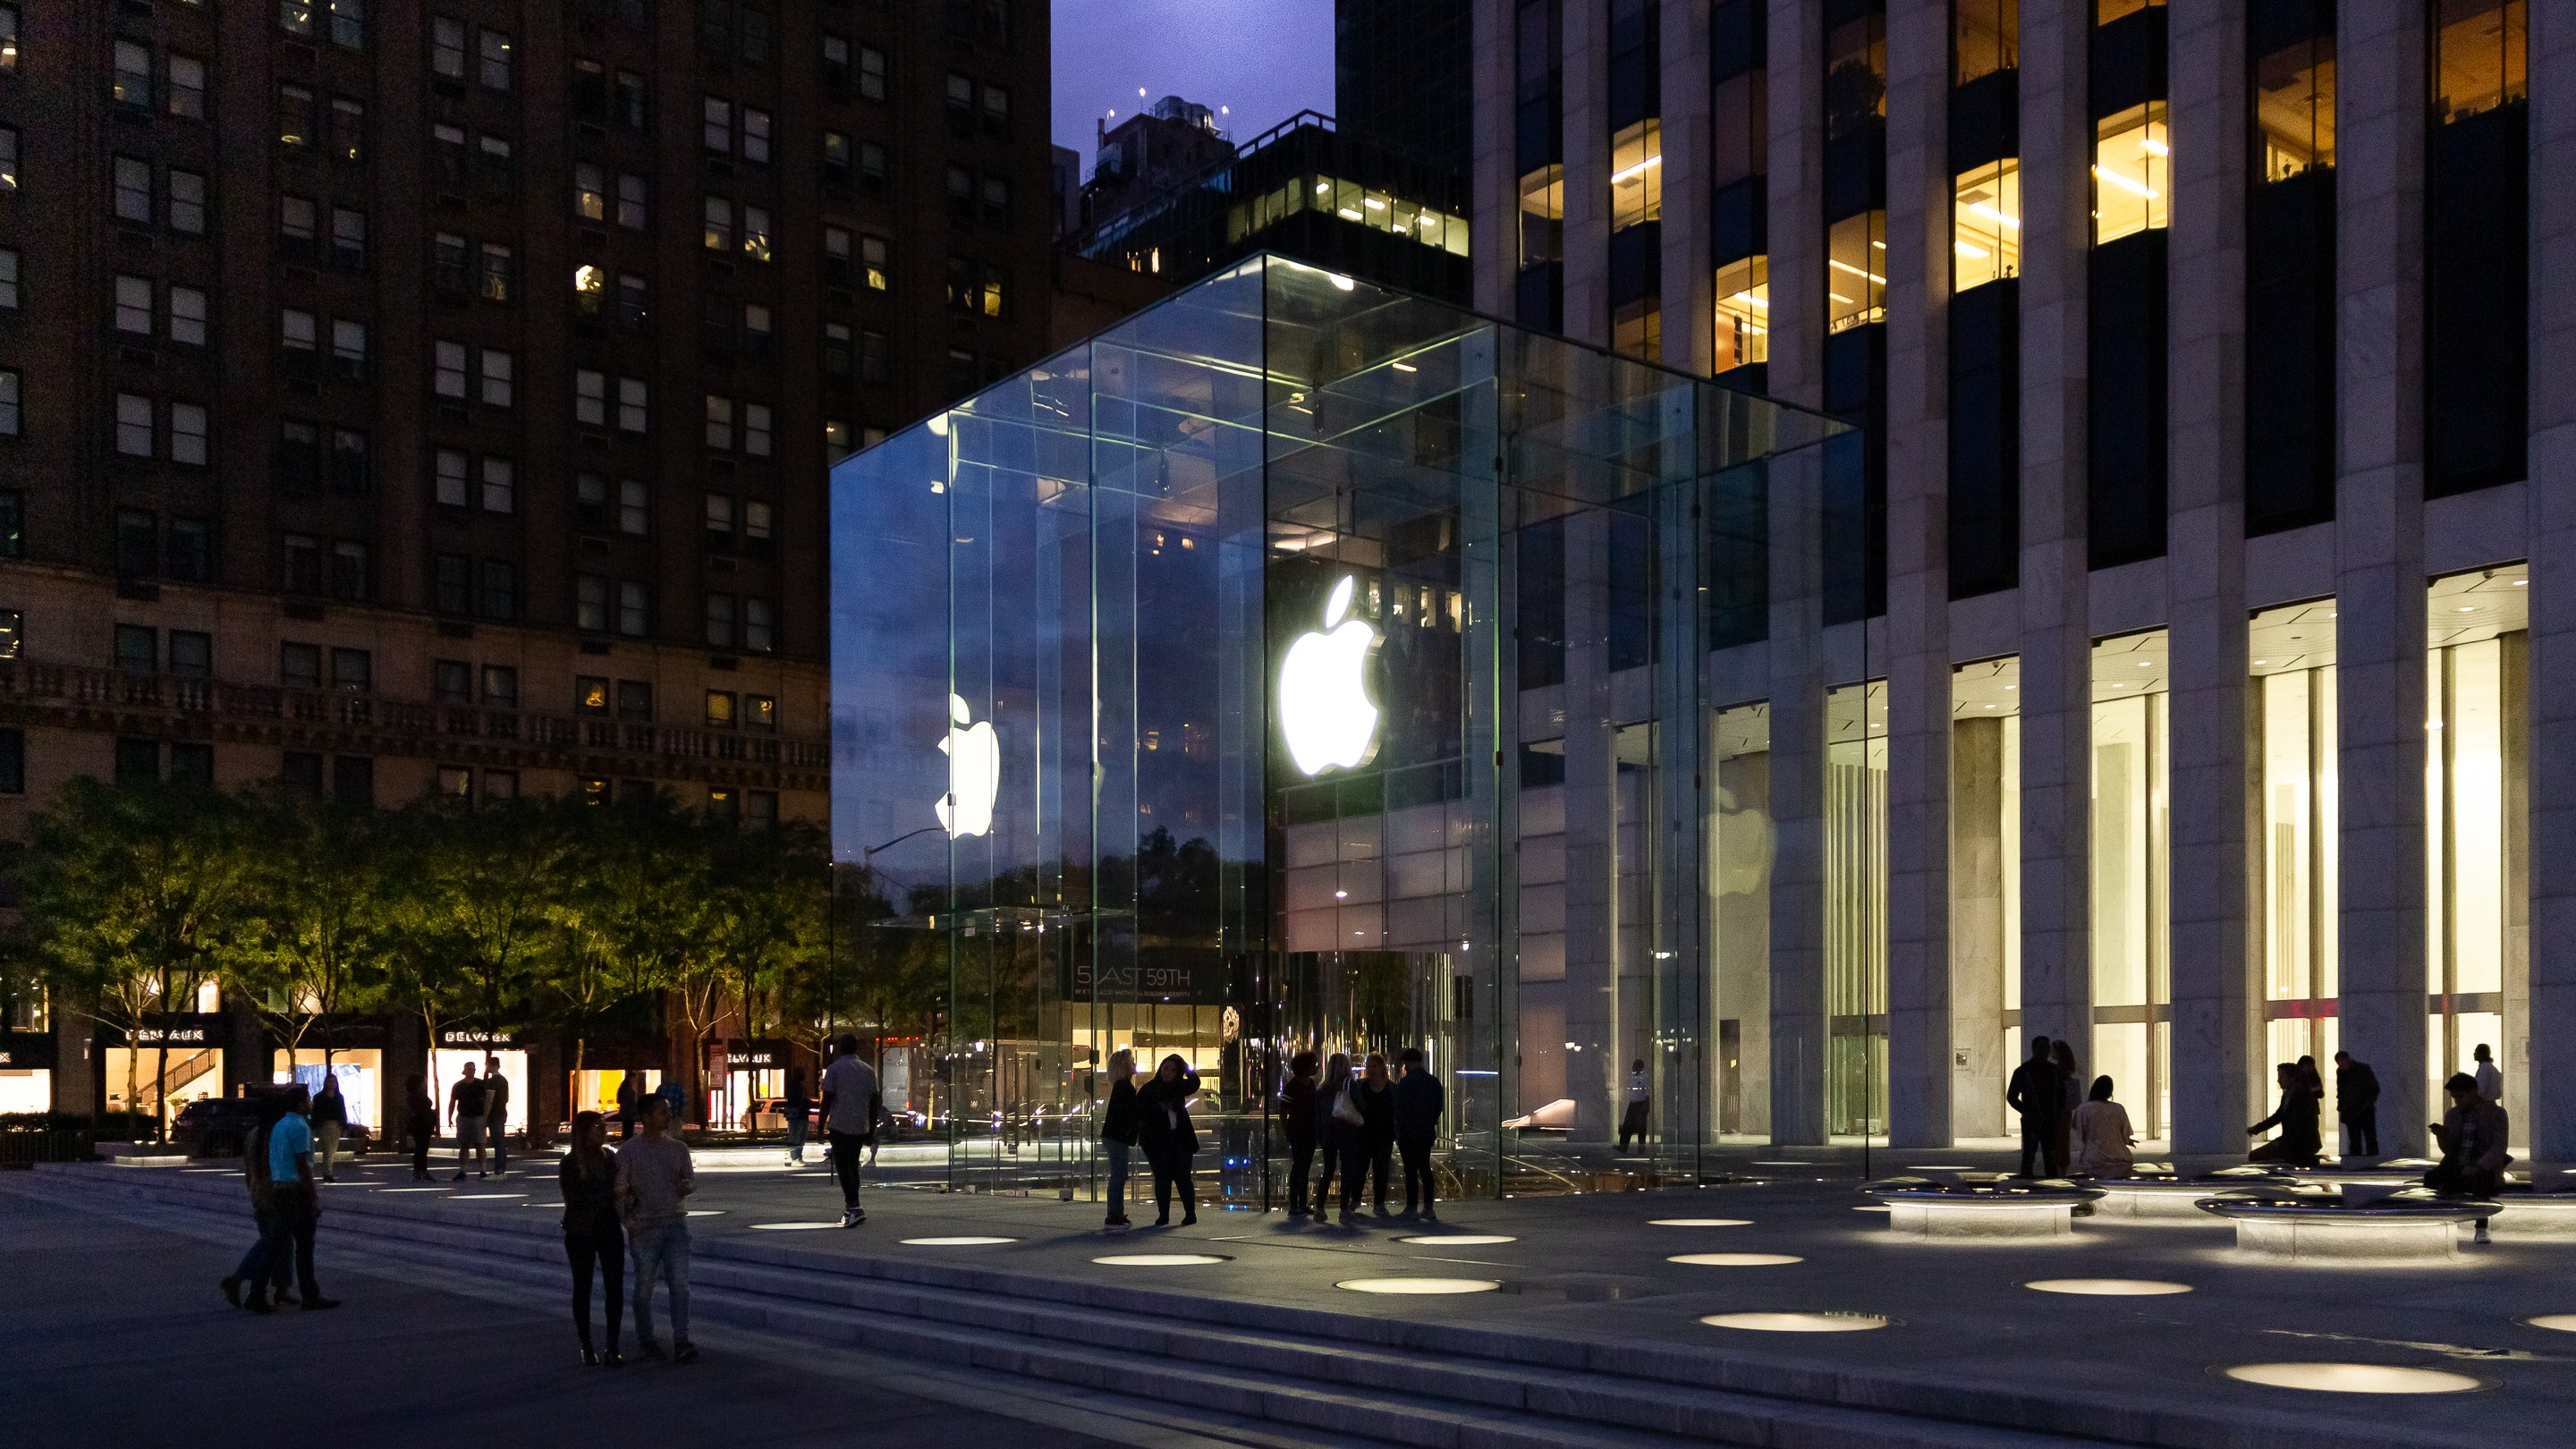 Apple's Fifth Avenue looks amazing